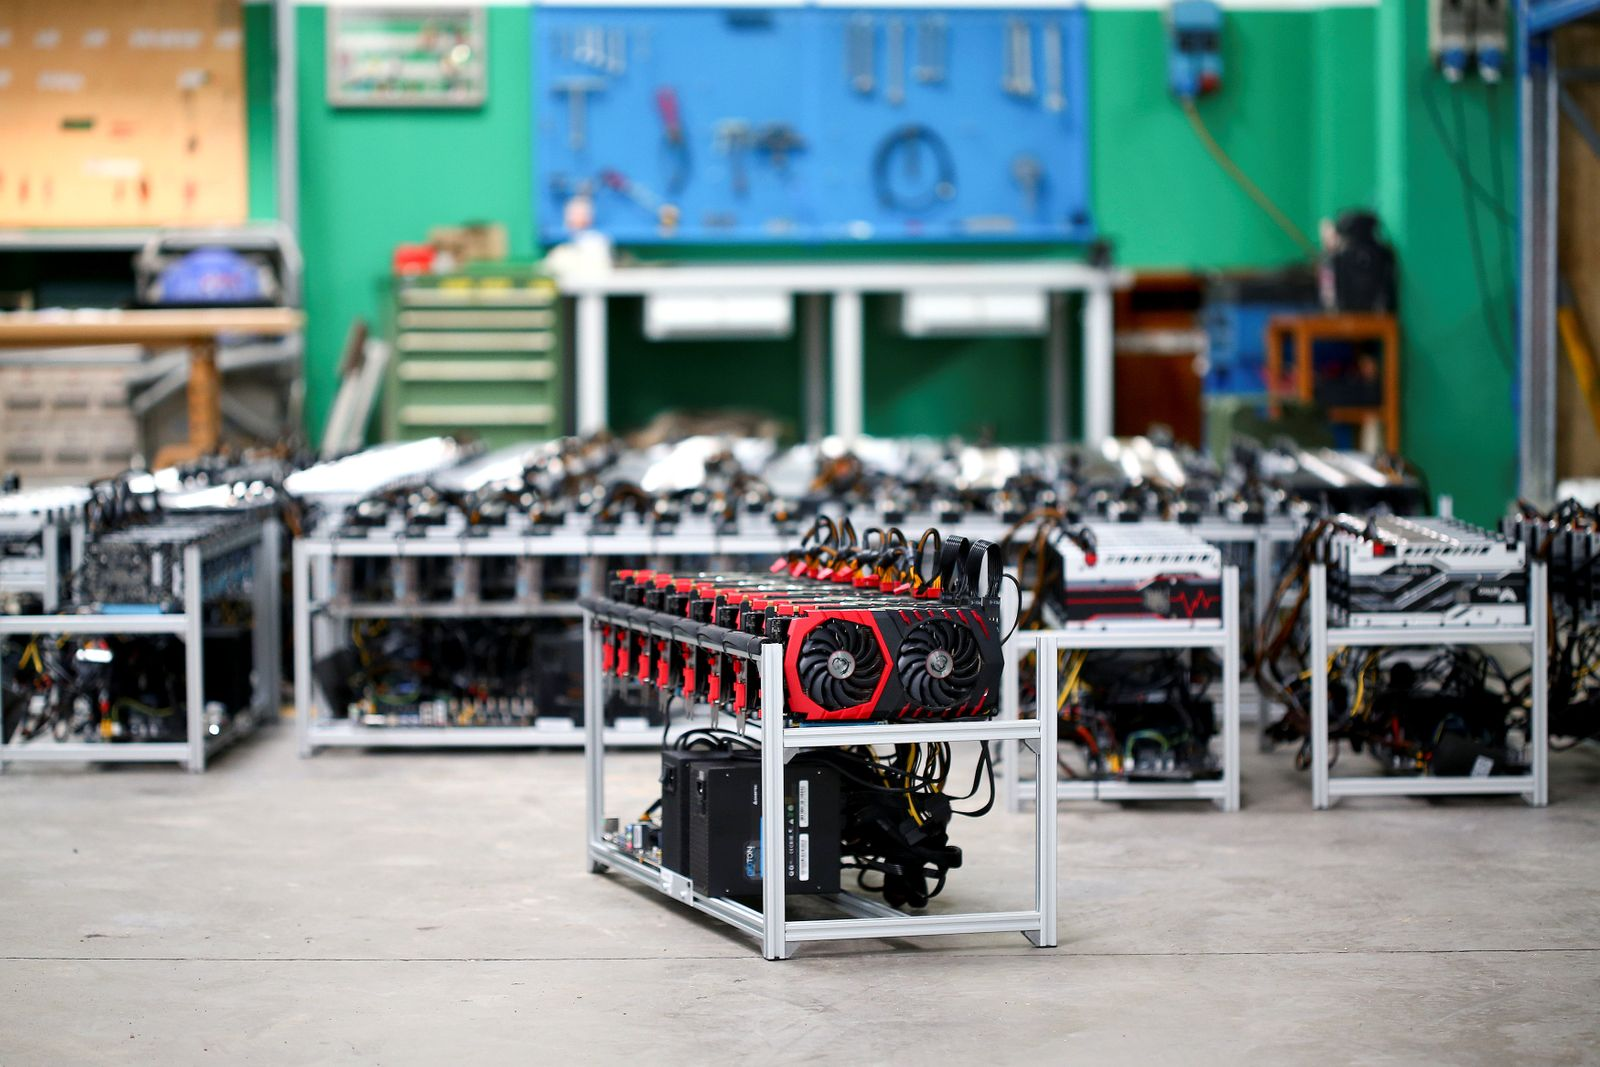 """A """"Mining rig"""" computer server is pictured in Bitminer Factory in Florence"""